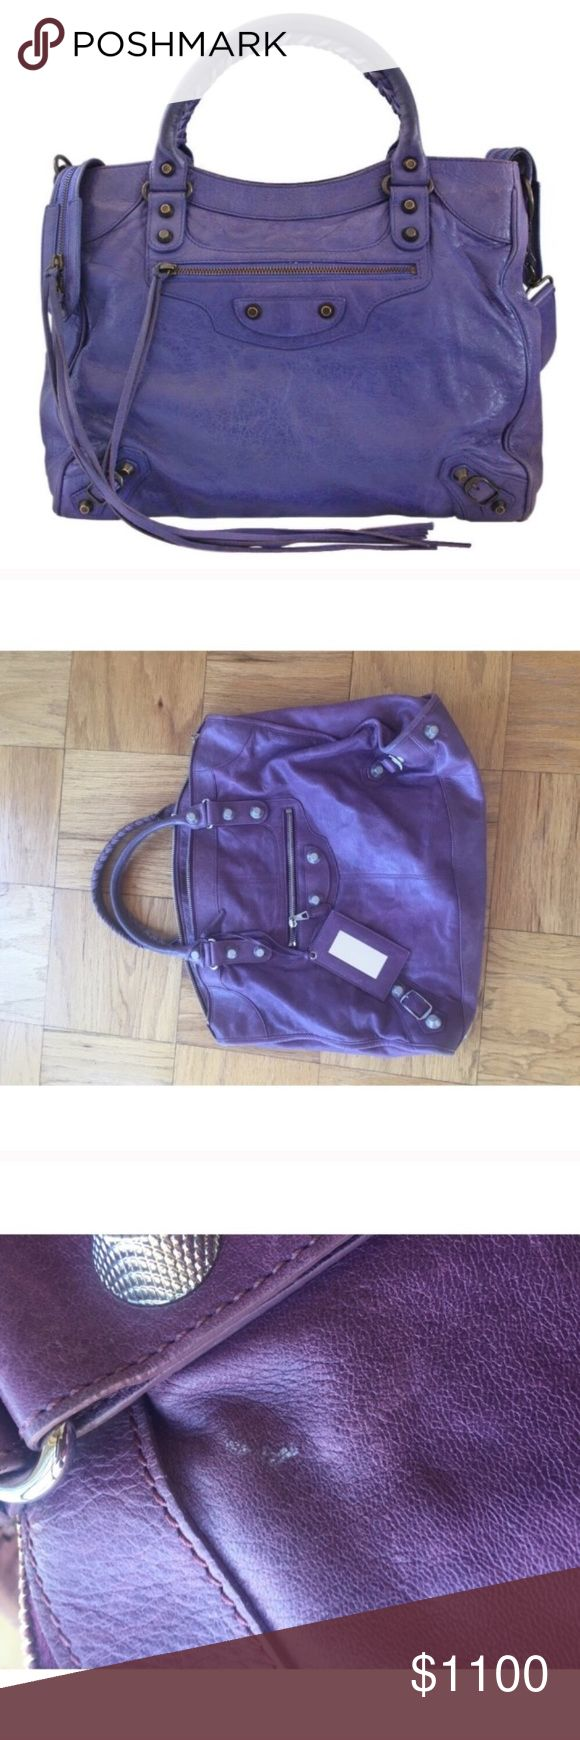 "BALENCIAGA Arena Giant City Purple Handbag This bag has exterior scuffs and some marks. The interior has some pet hair in the inside. Some scratches on the leather. Leather aging and some discoloration. It comes with a mirror. This bag is in excellent condition. This bag measures about 14"" in H and about 18.5"" W Balenciaga Bags Shoulder Bags"